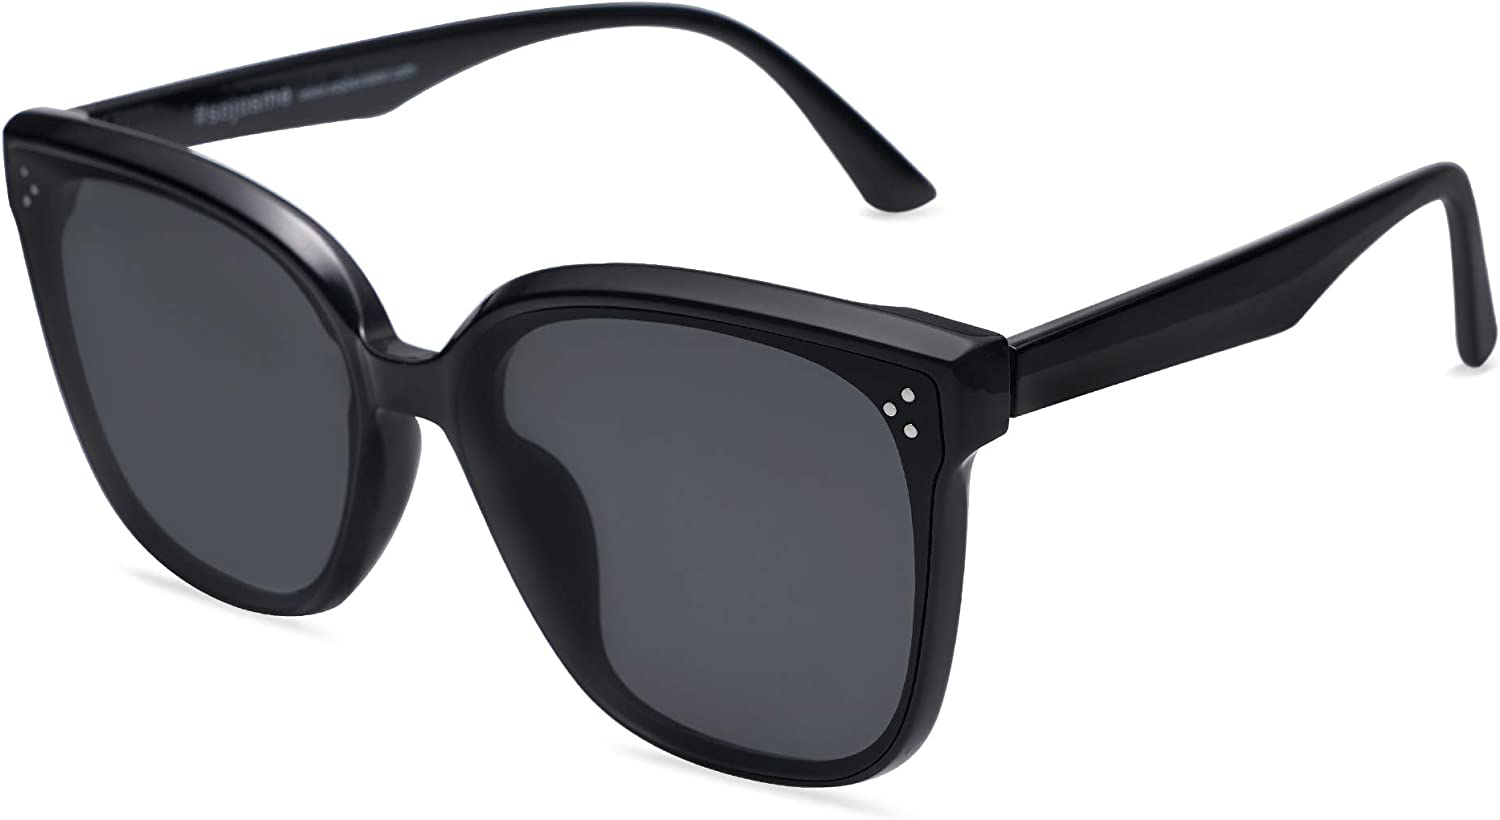 SOJOS Retro Oversized Square Cateye Sunglasses Women low-pricing Raleigh Mall for Butterf